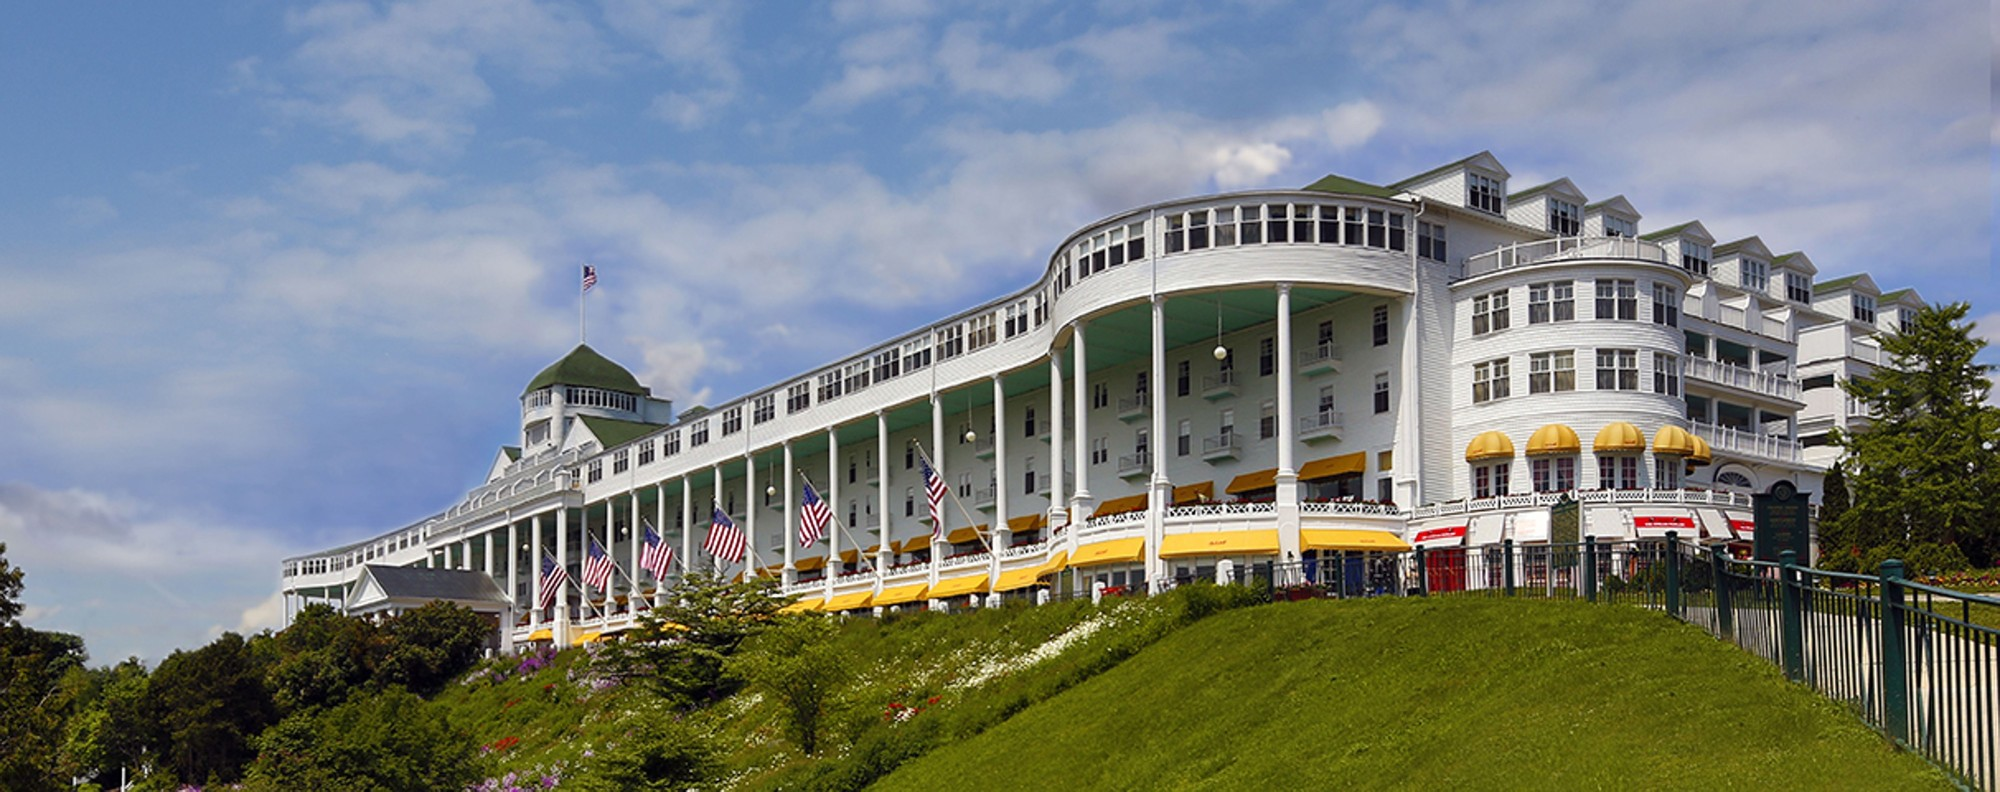 The Grand Hotel on Michigan's Mackinac Island recalls bygone glamour and hospitality. Picture: Don Johnston